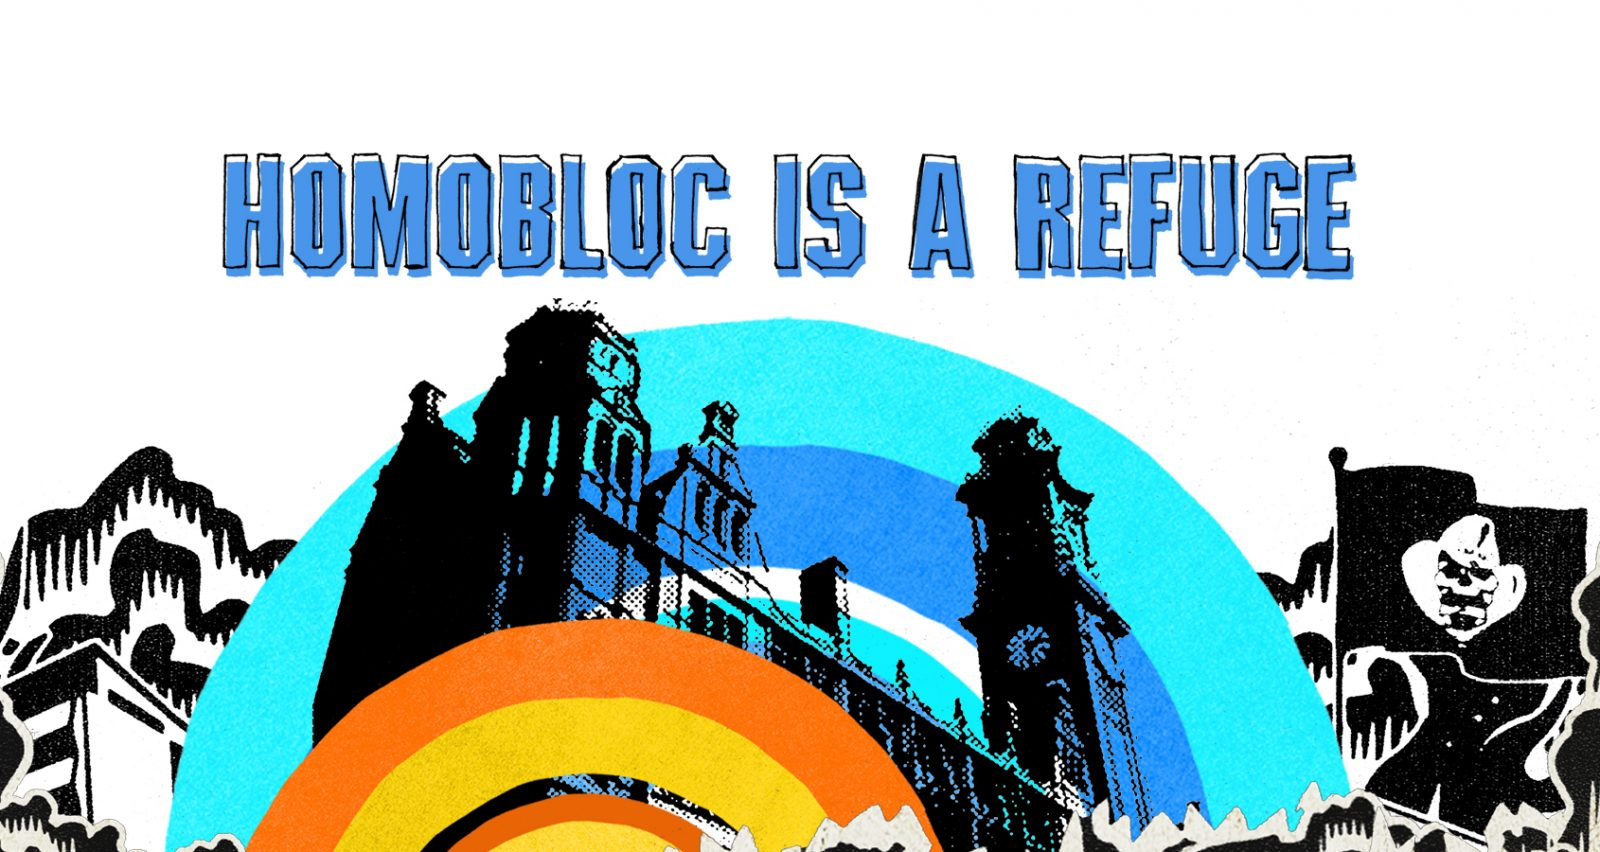 Homobloc is a Refuge